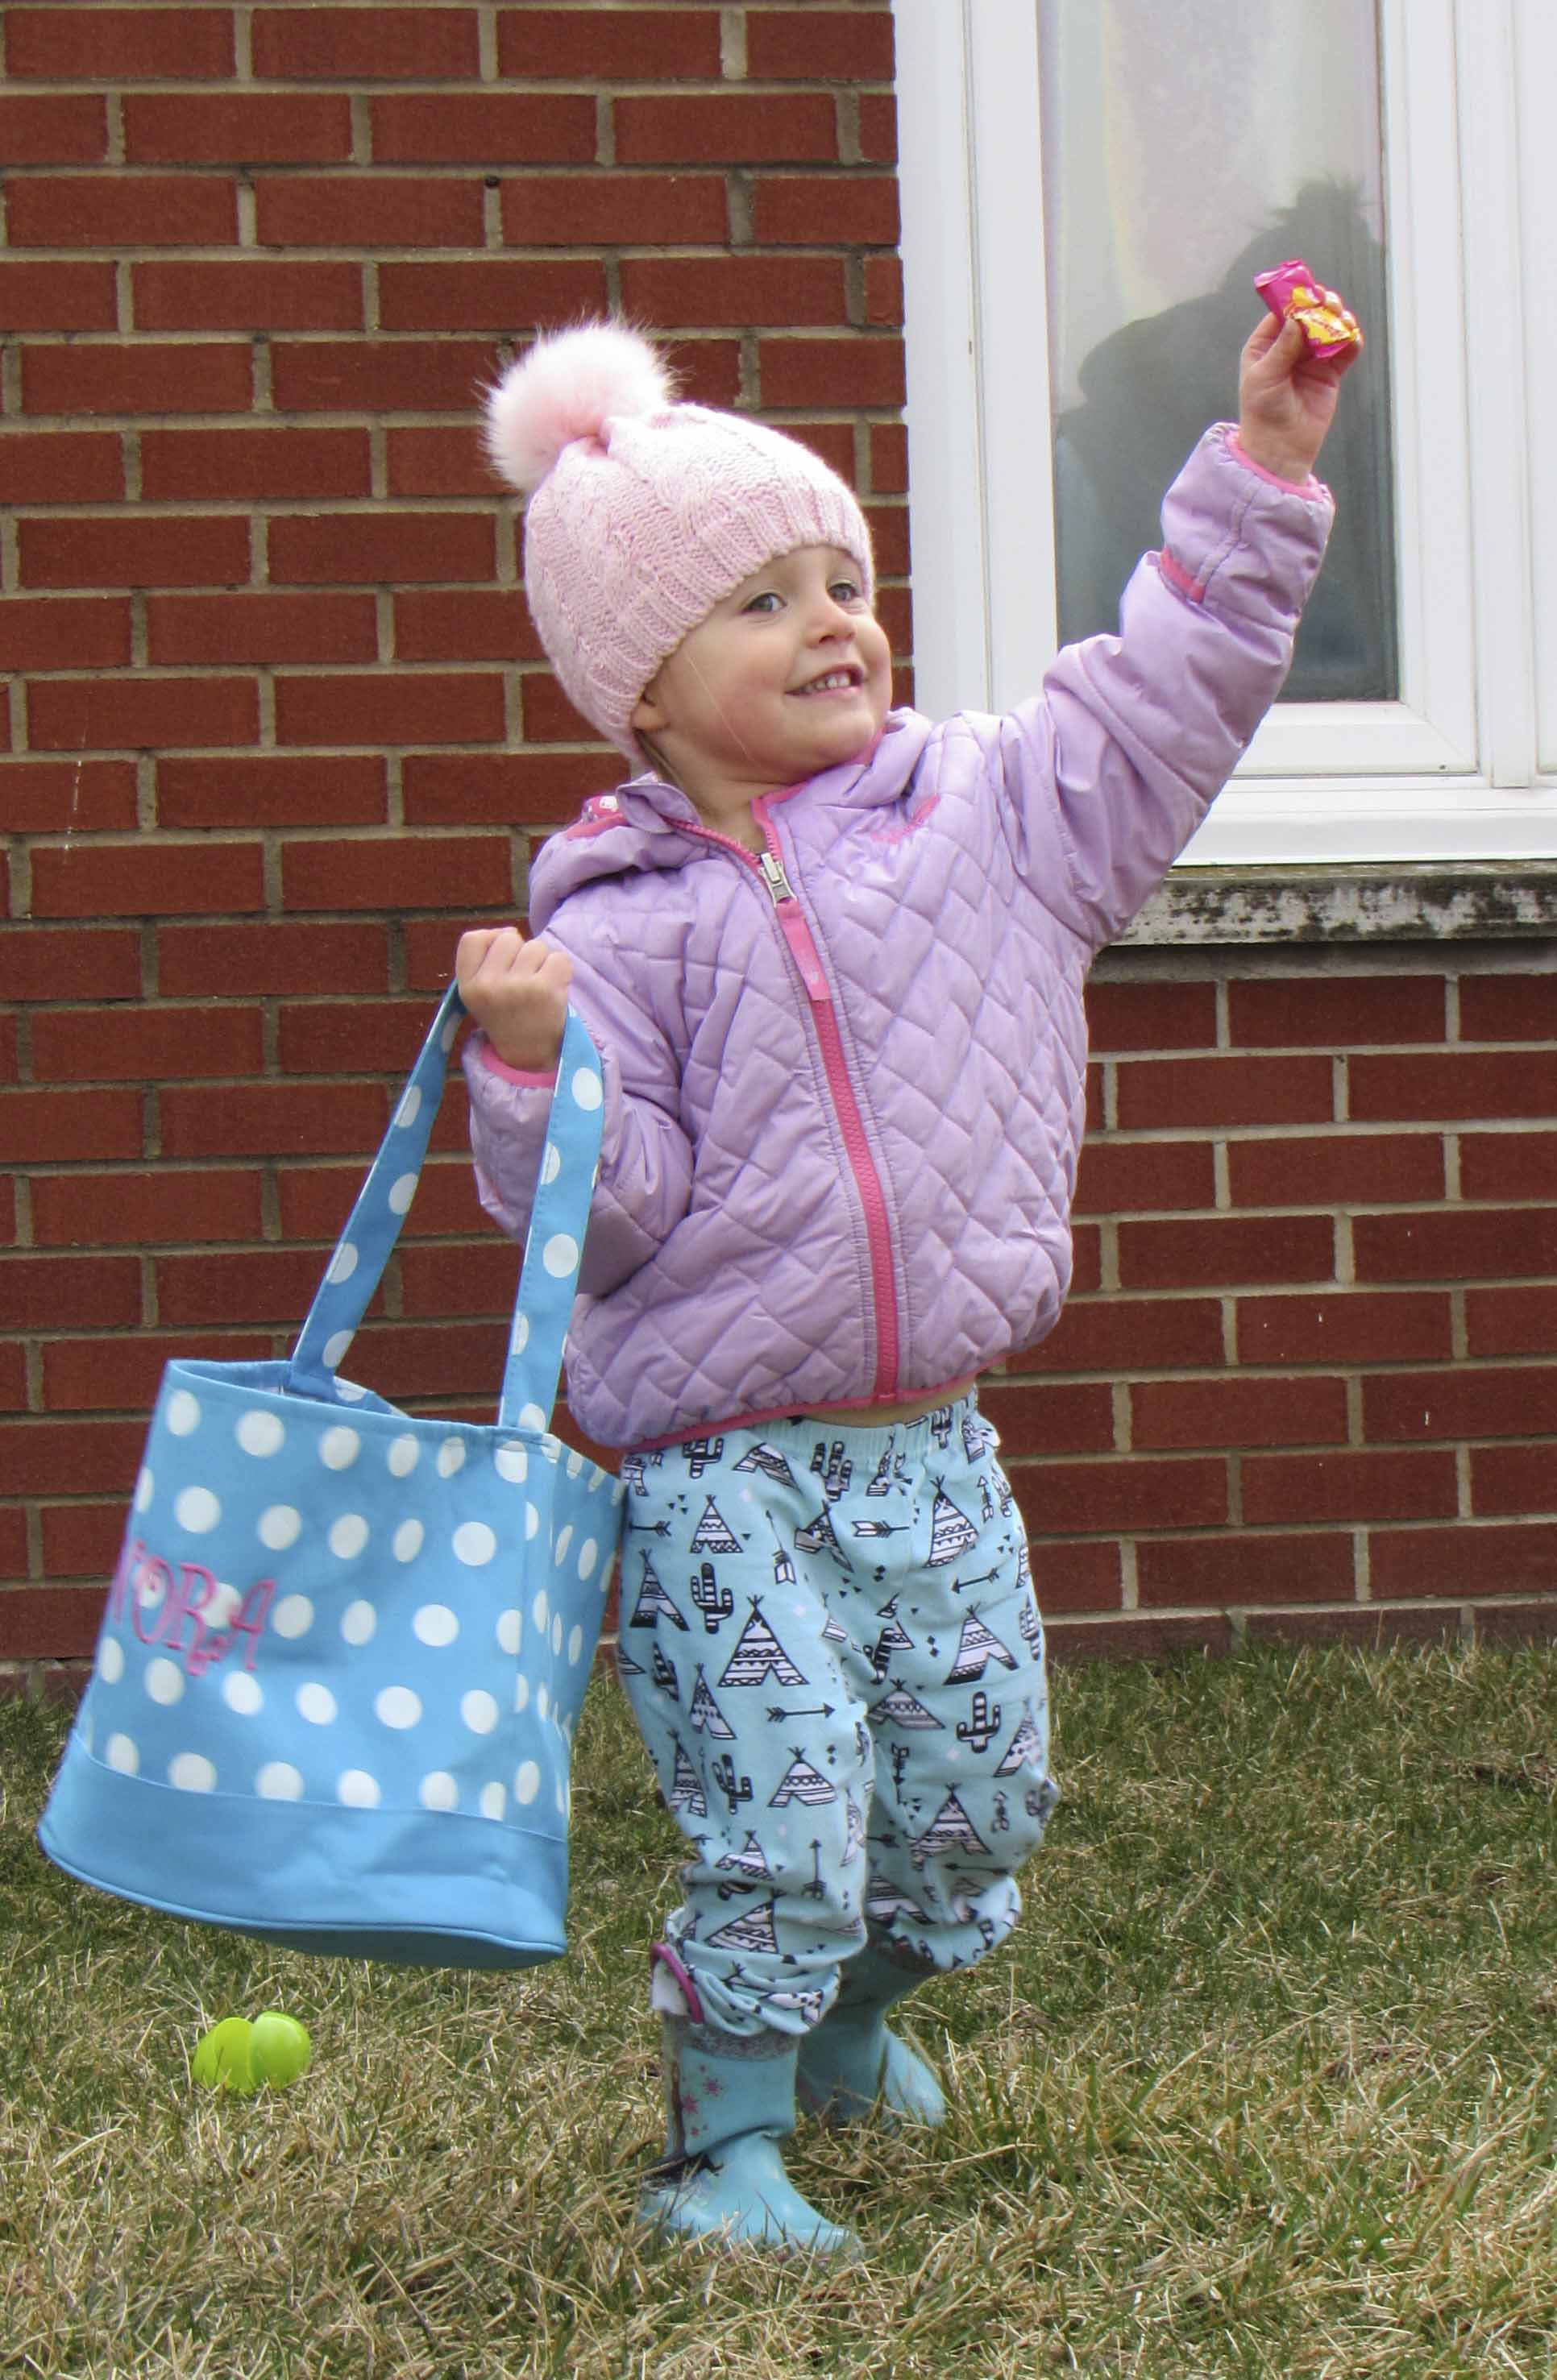 Nora Harms shows her excitement at finding a piece of candy during the Easter egg hunt over the weekend.